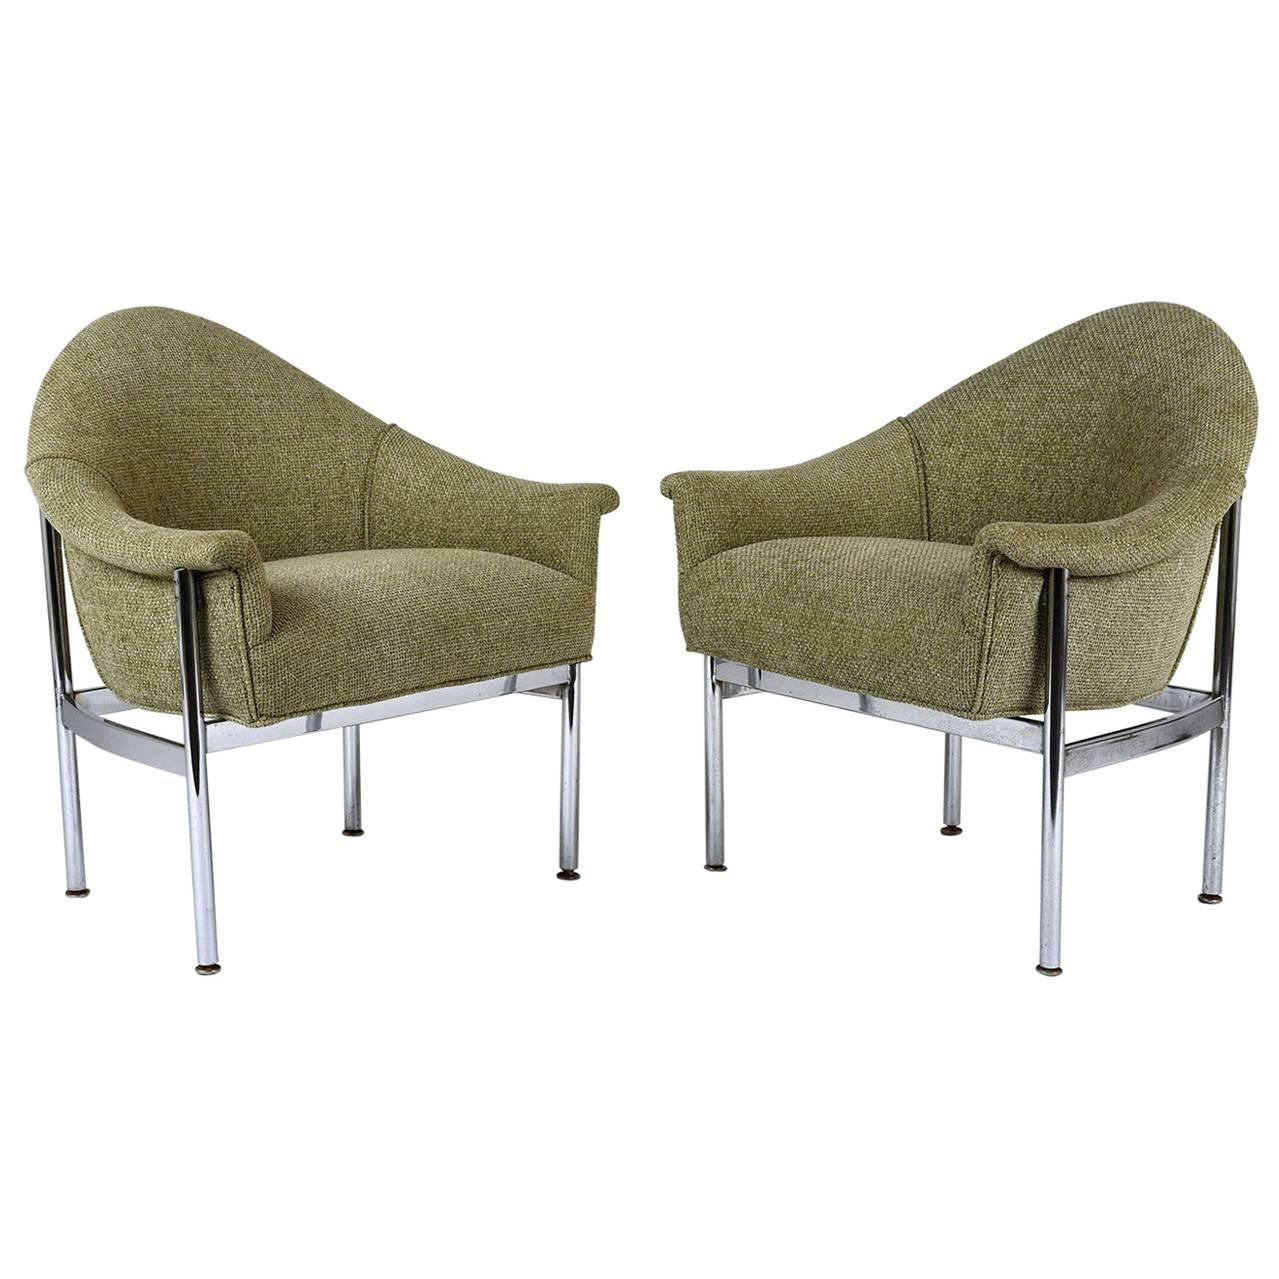 contemporary lounge chairs burgundy chair covers wedding pair of mid century modern for sale at 1stdibs